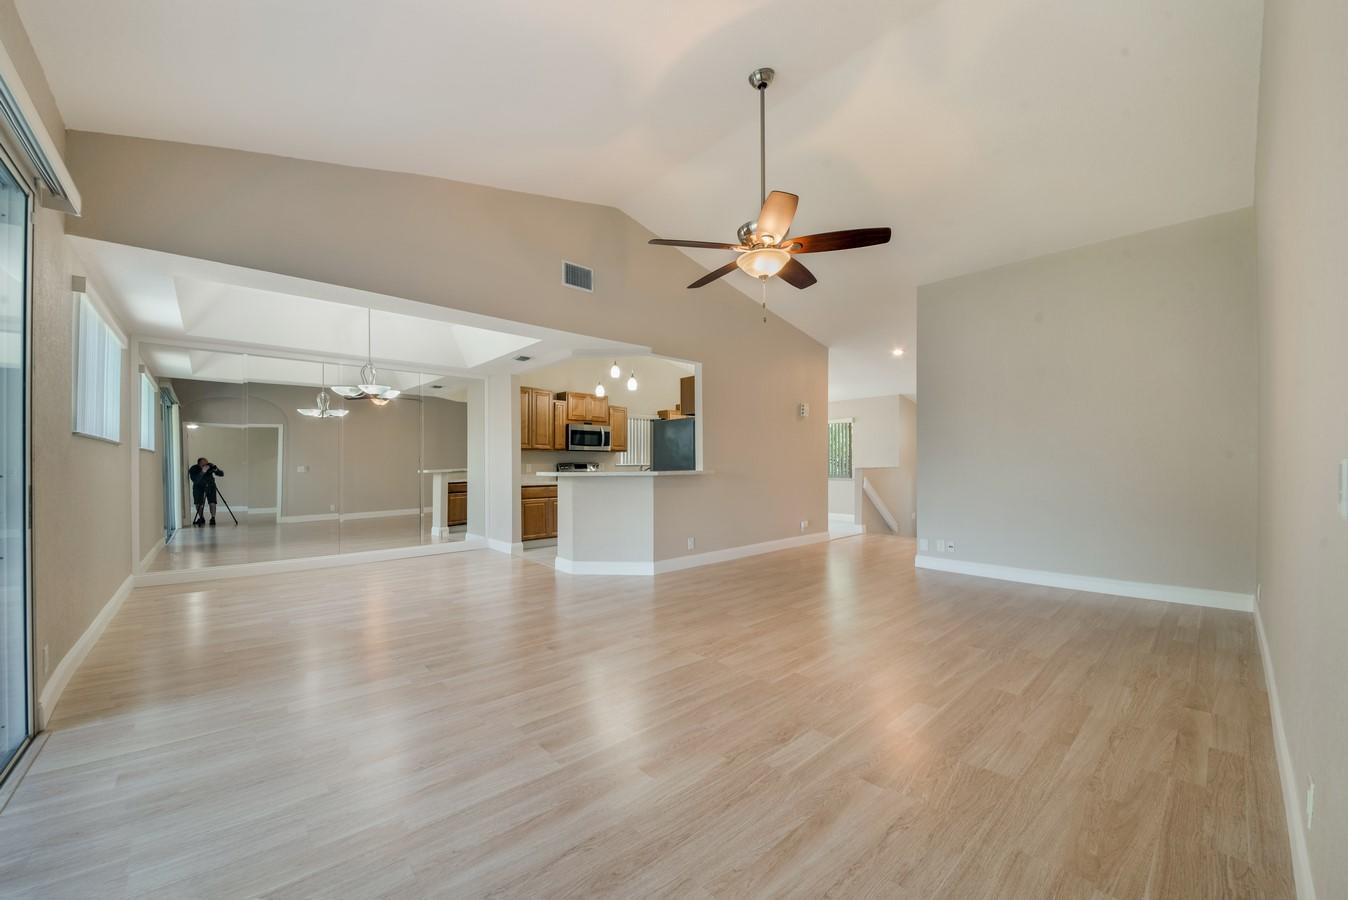 9761 Nickels Boulevard 308 Boynton Beach, FL 33436 small photo 9